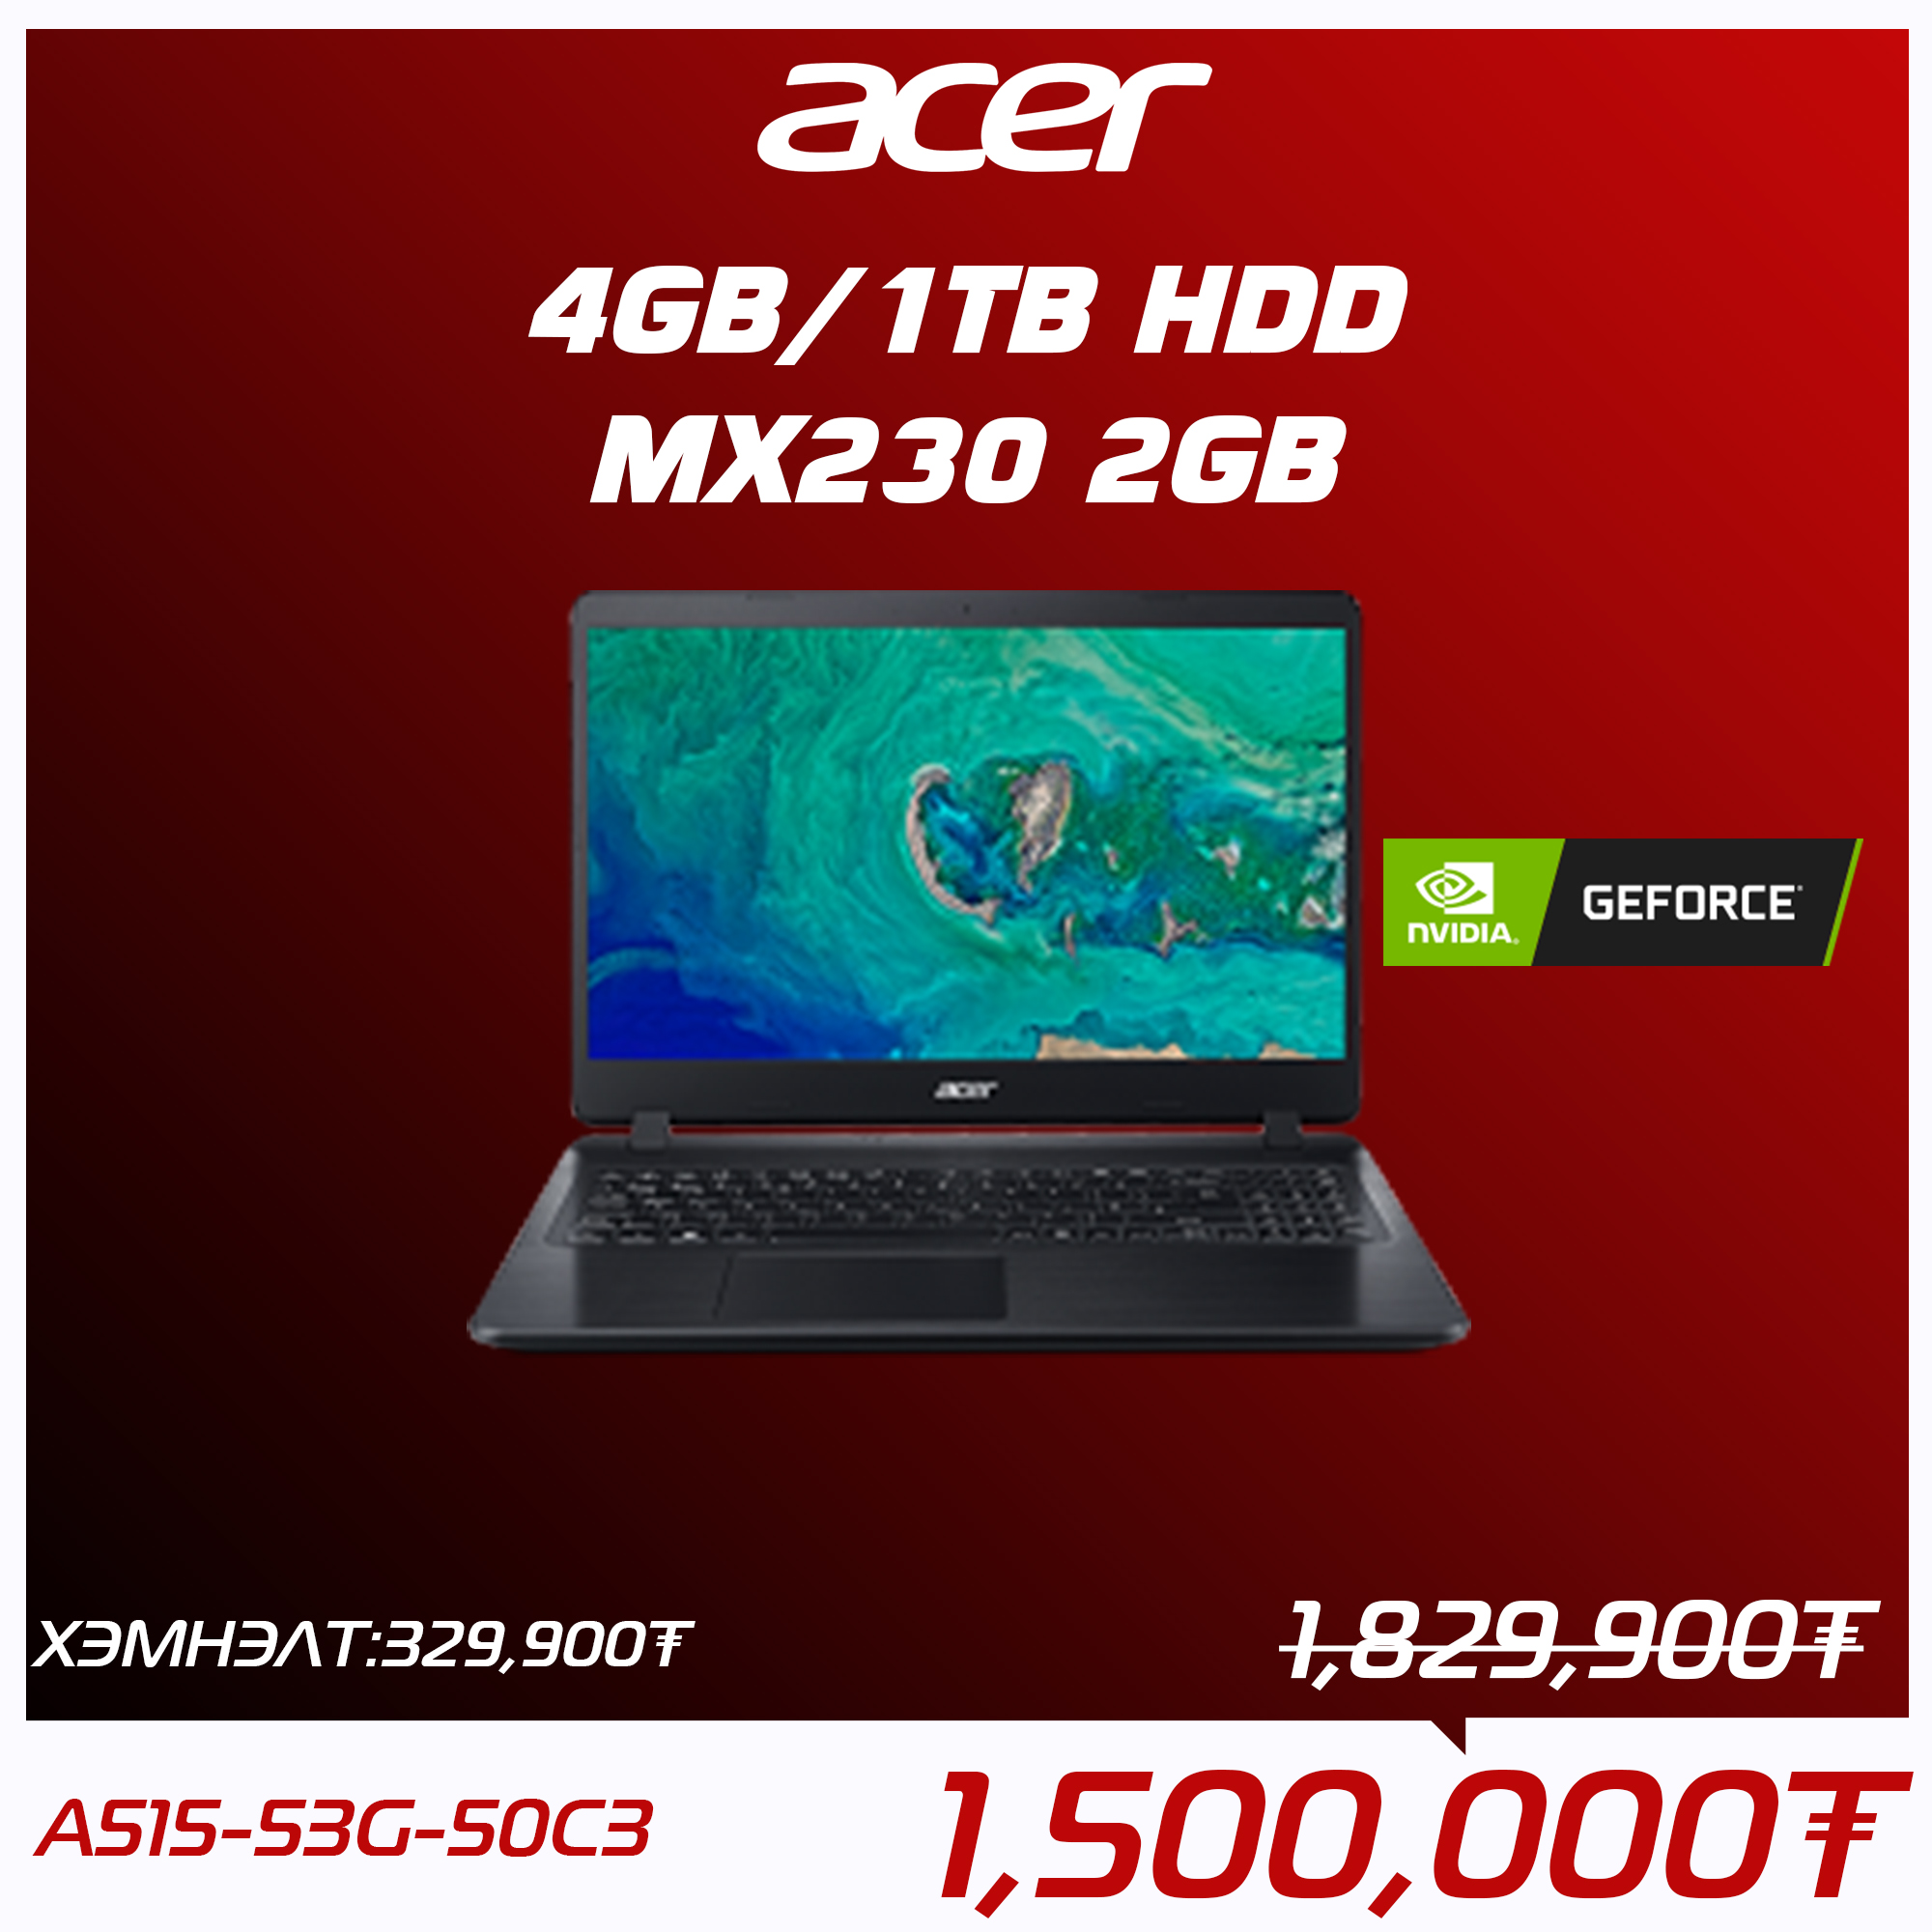 ACER A515-53G-50C3